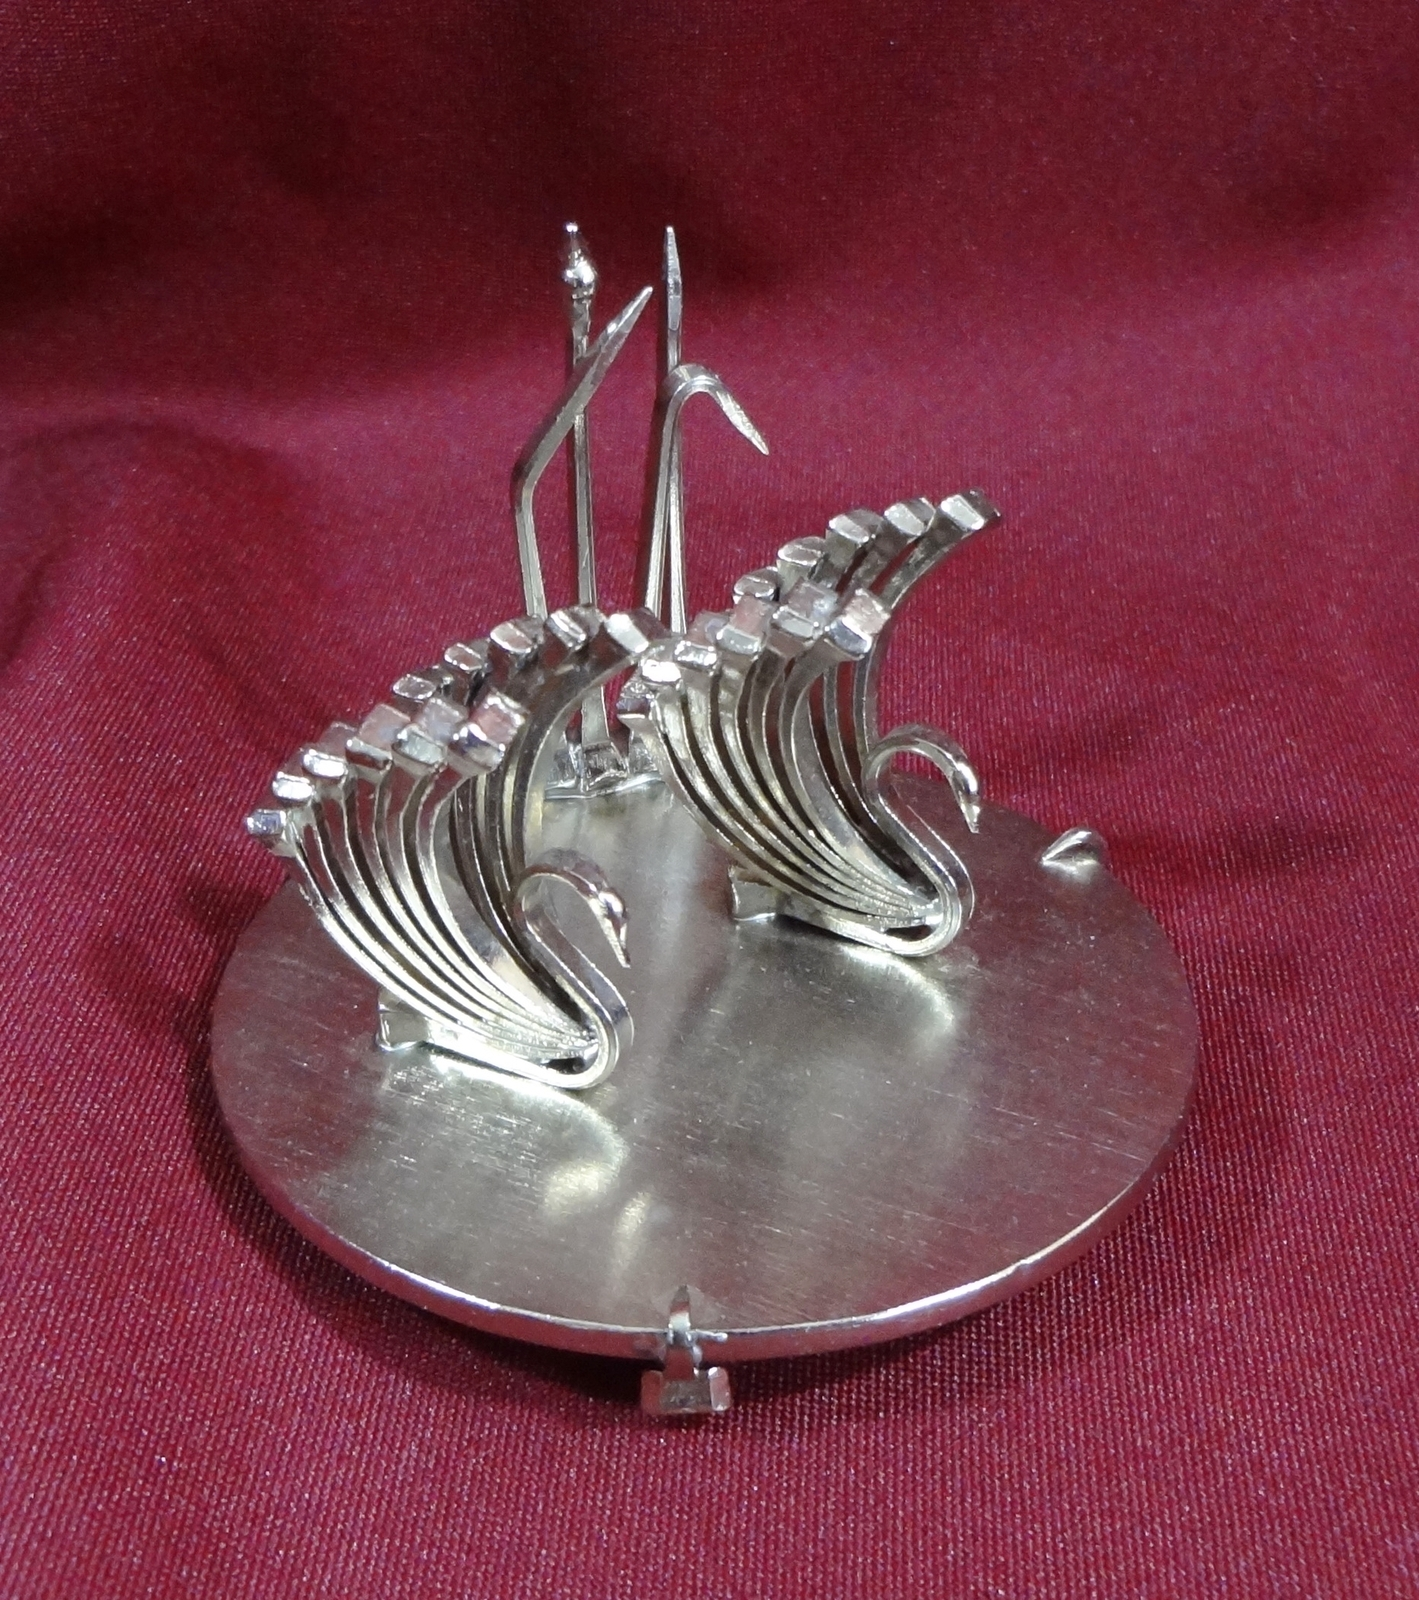 Horseshoe Nail Fine Art Swan Figurine Handcrafted One Of A Kind